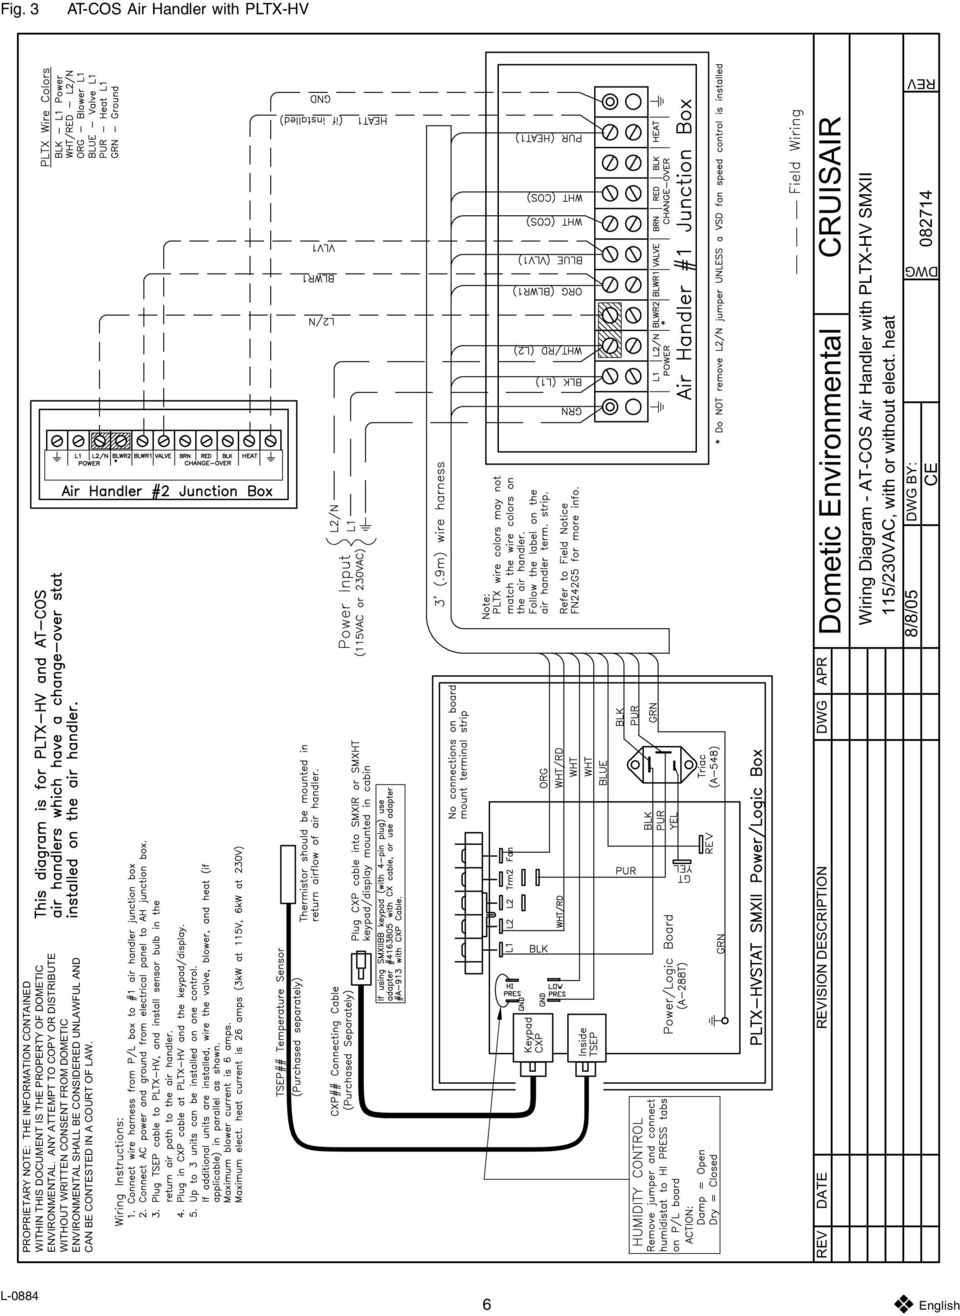 dometic rm2611 wiring diagram 4 wire ac motor rm26/28 schematic | refrigerator troubleshooting – readingrat.net